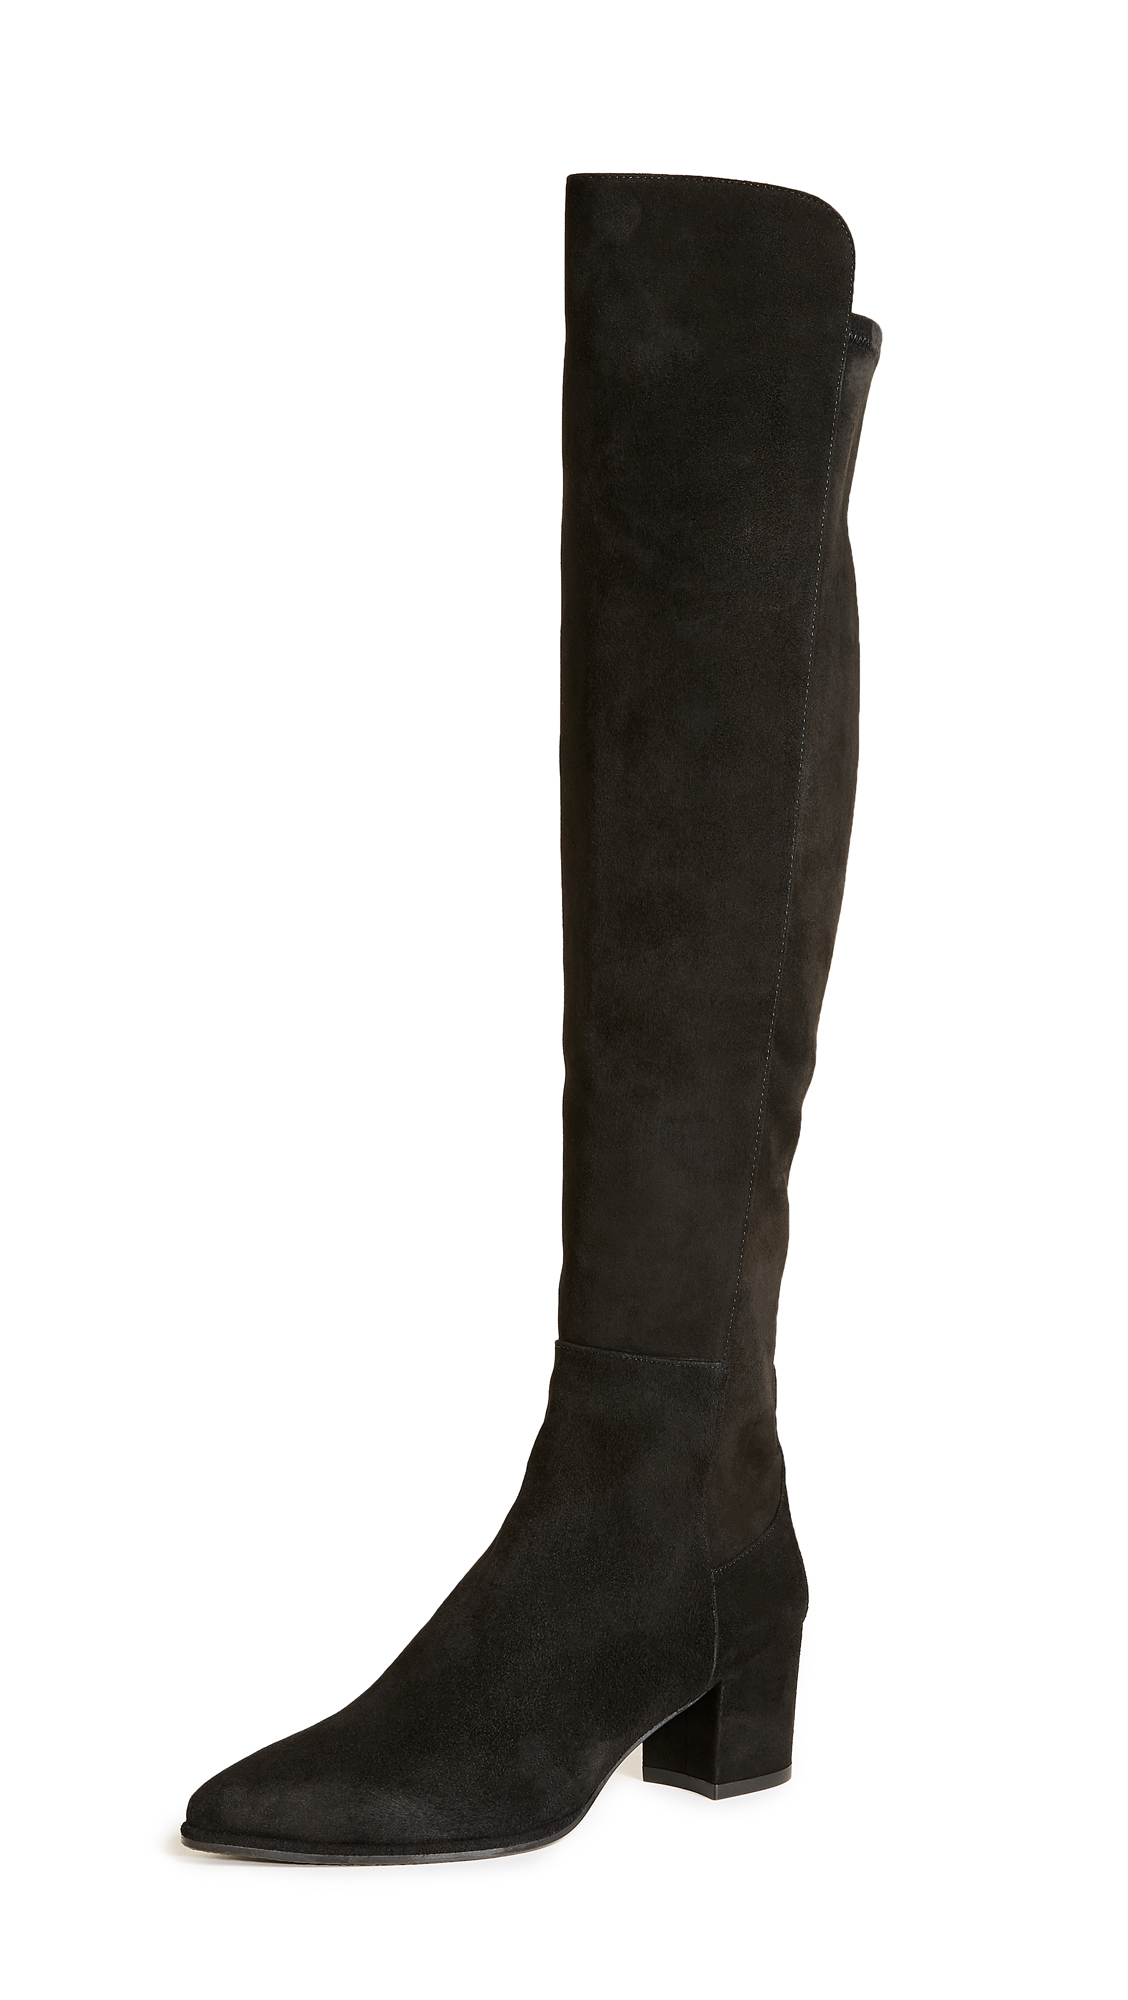 Stuart Weitzman Allways Knee High Boots - Black